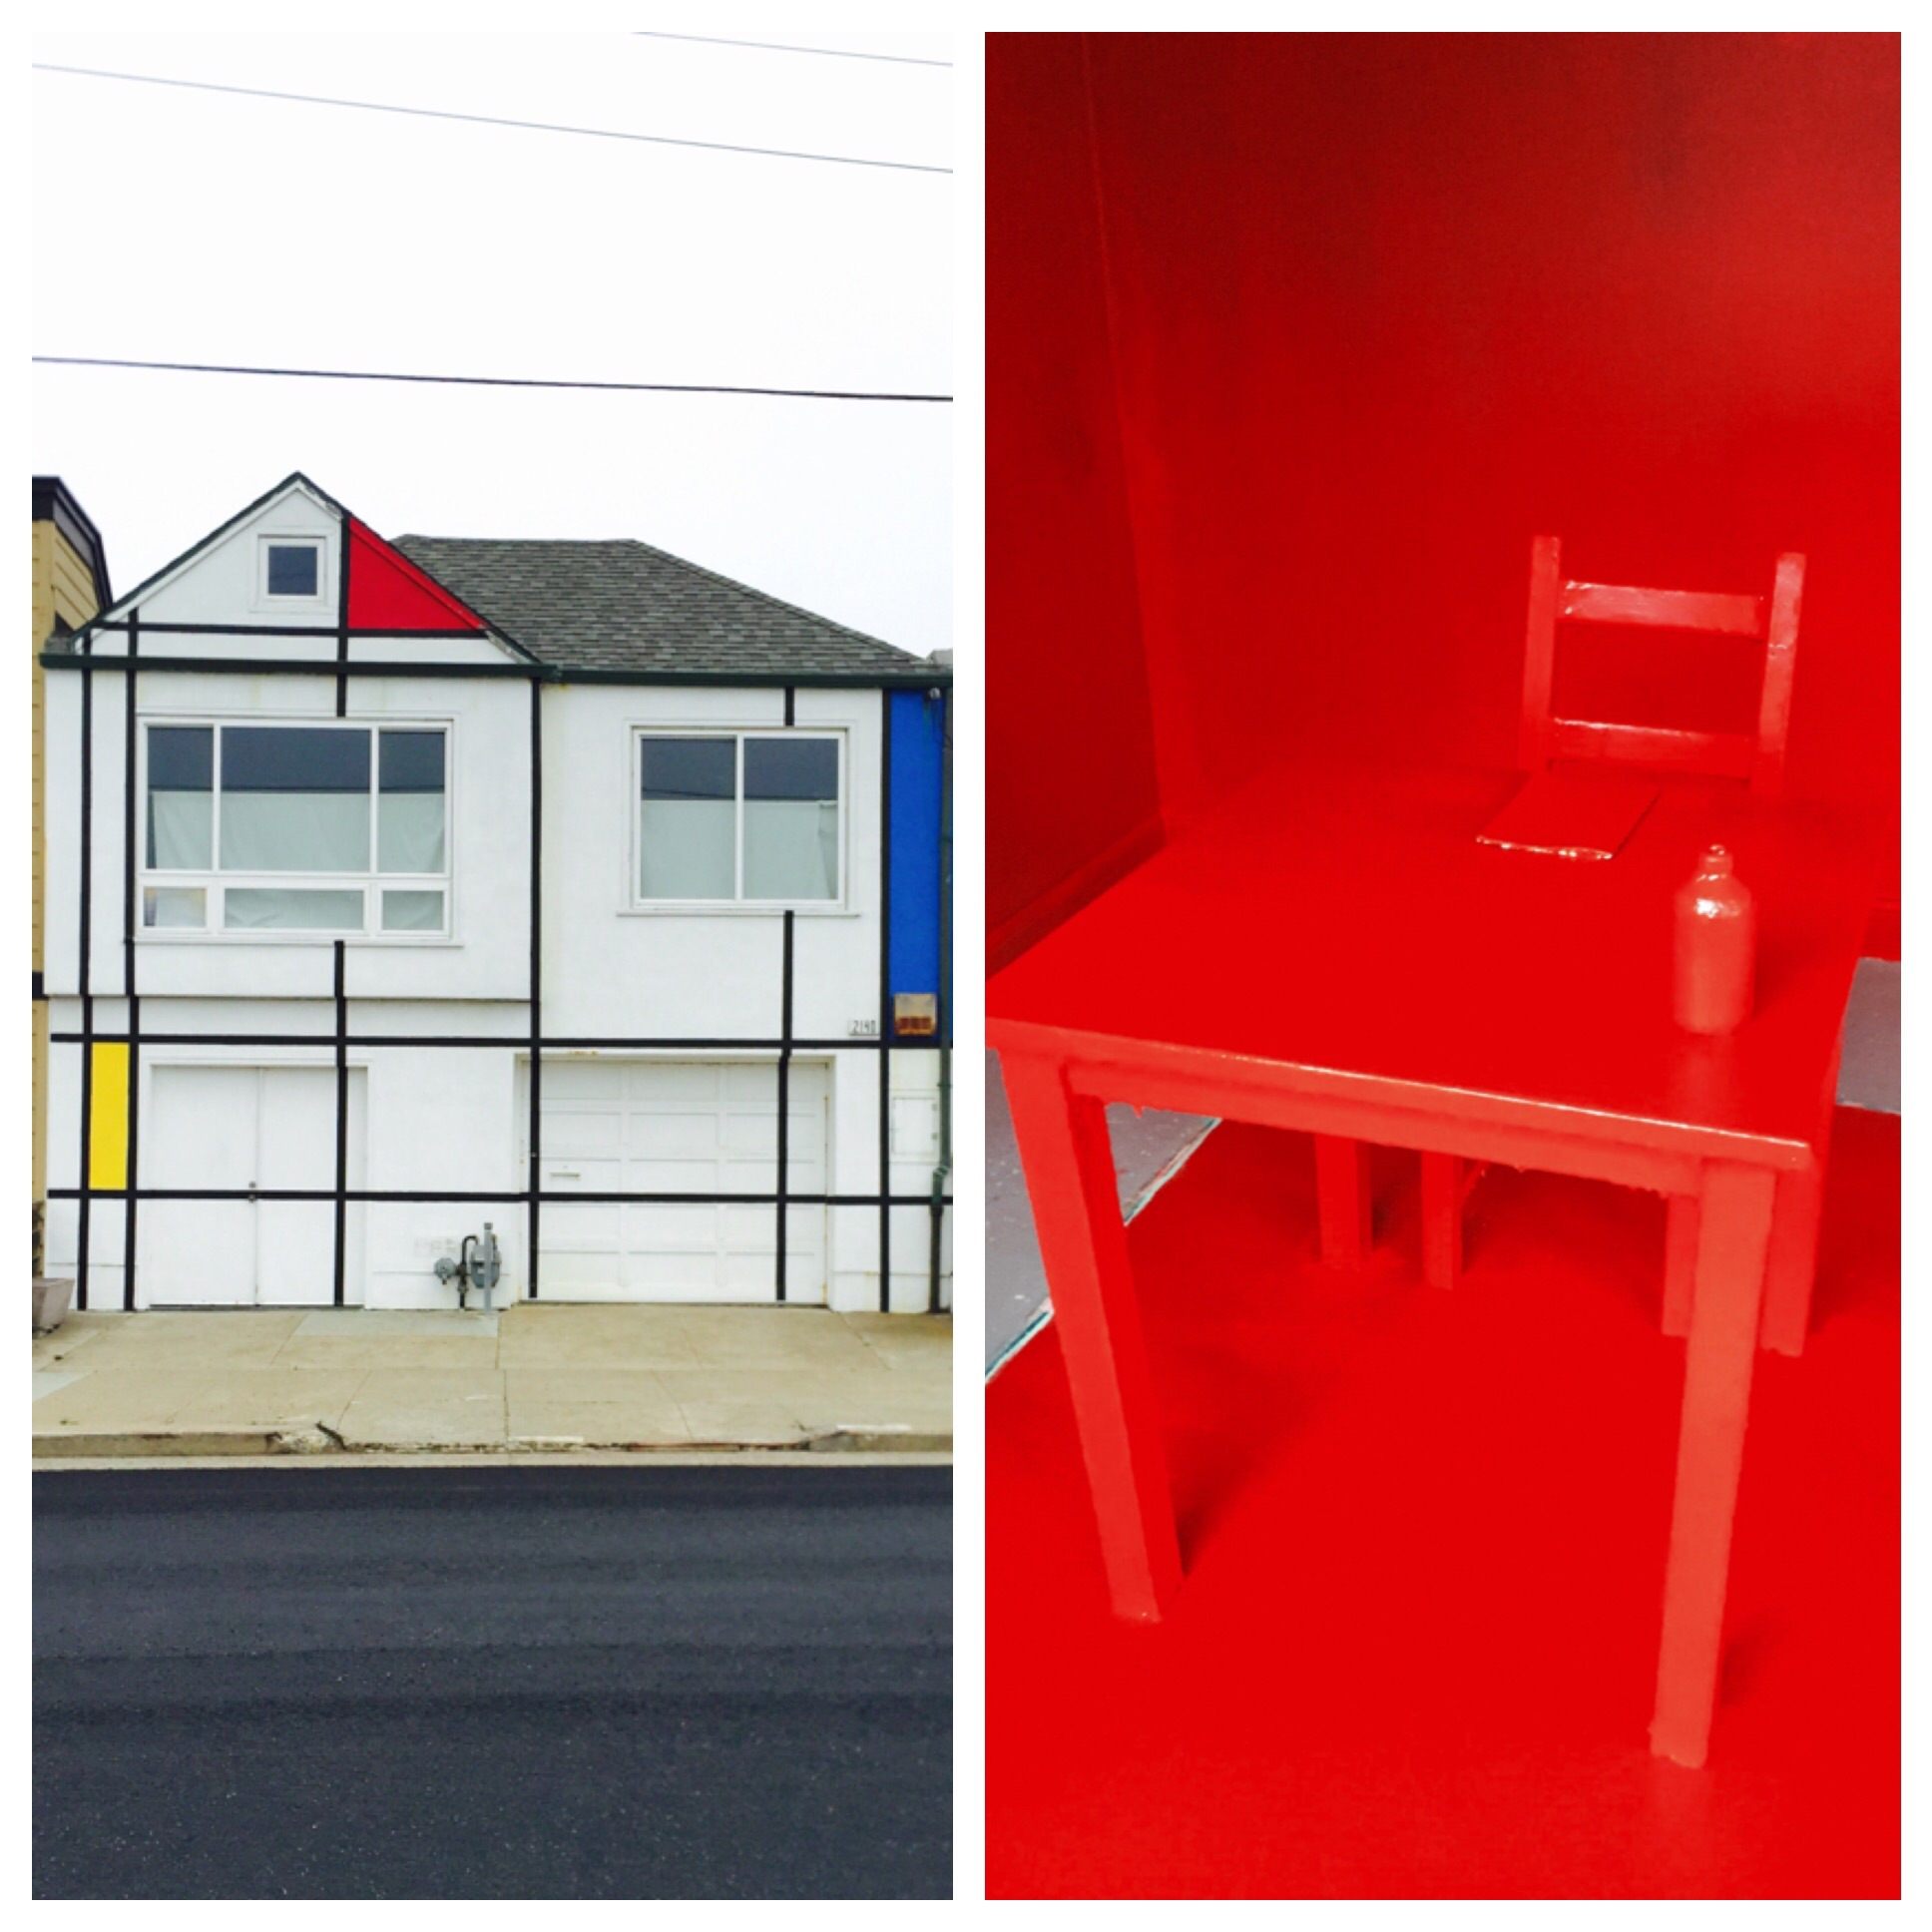 Leah Rosenberg, Everyday, a color, 2015. Left: source color taken from the world; right: painted gallery at Irving Street Projects. Photo courtesy of Leah Rosenberg.